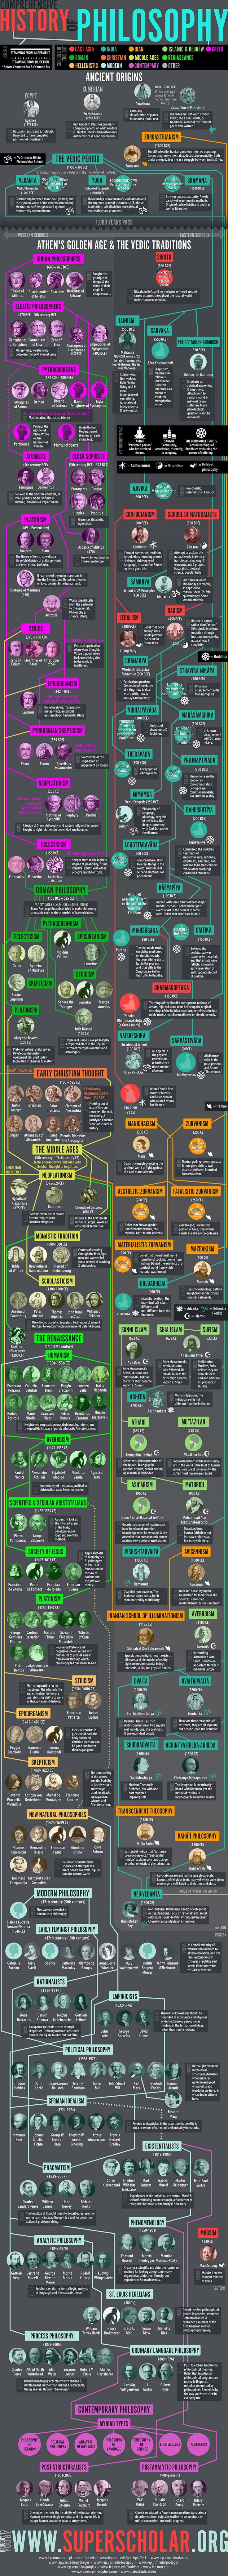 Comprehensive History of Philosophy Infographic